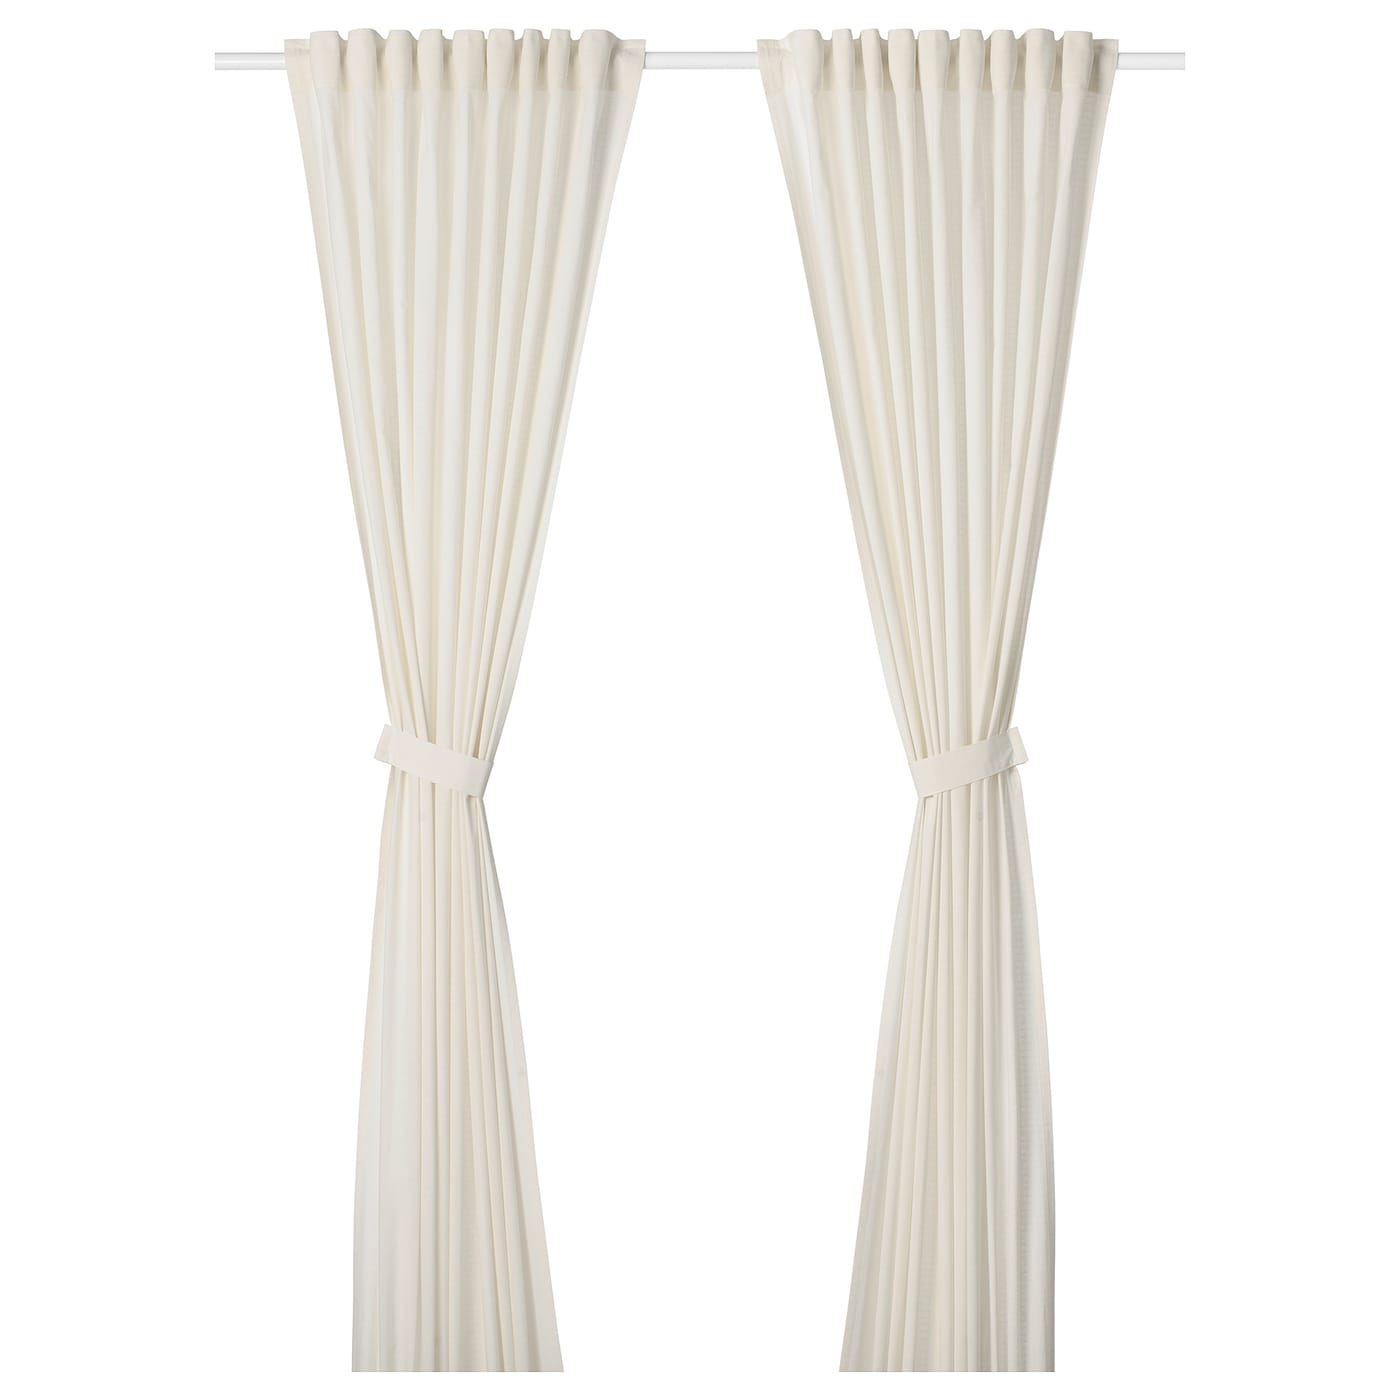 IKEA AMILDE curtains with tie-backs, 1 pair